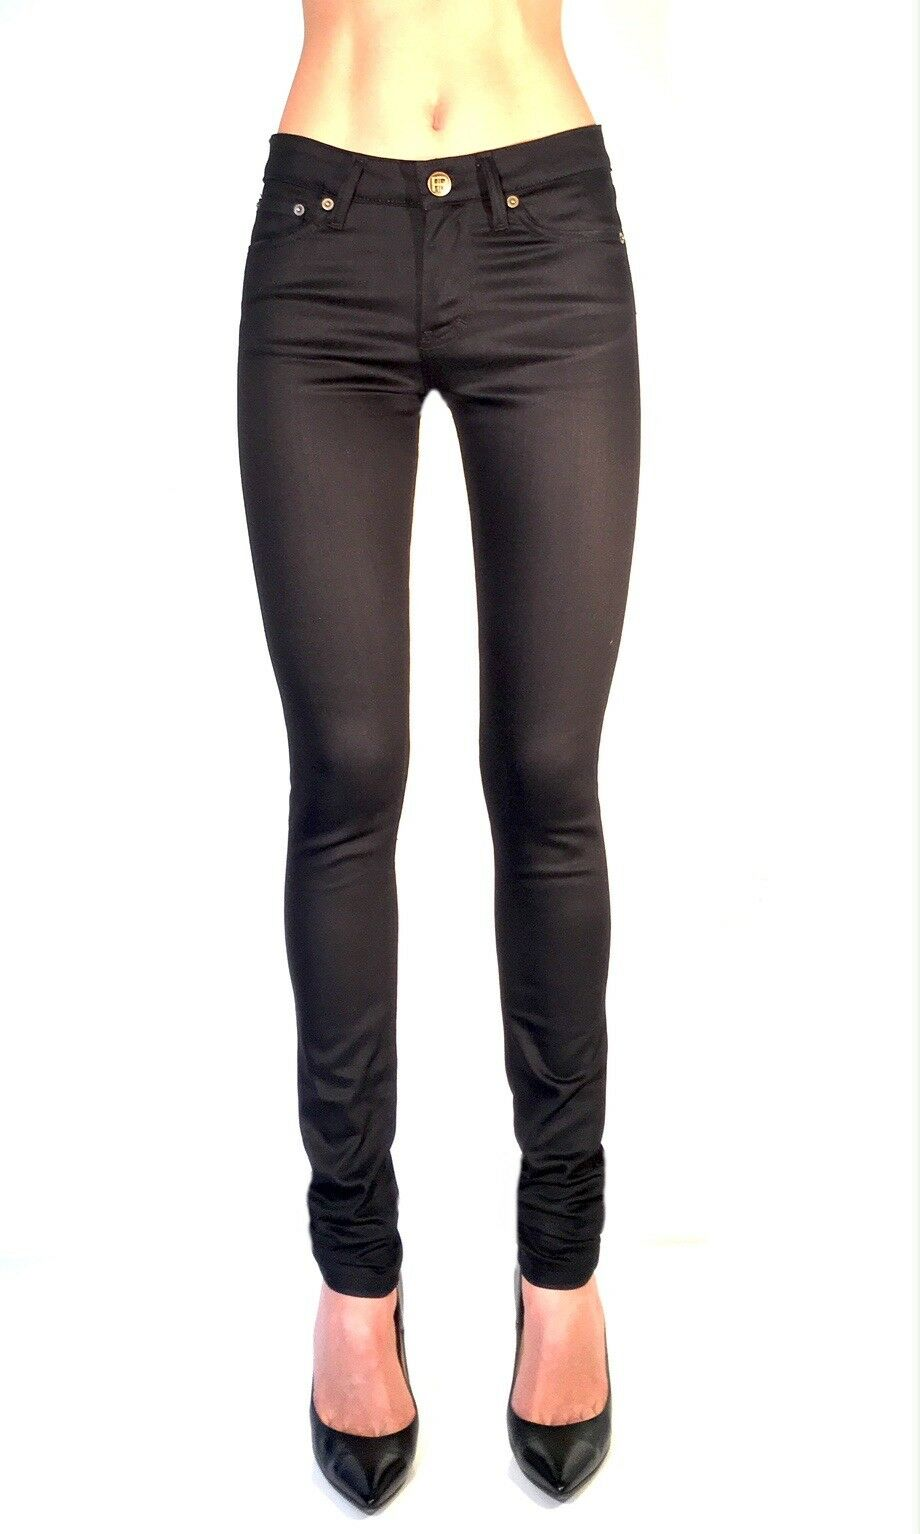 W26-L34 Skinny Jeans 100% Authentic ROKOTOFF Made In USA